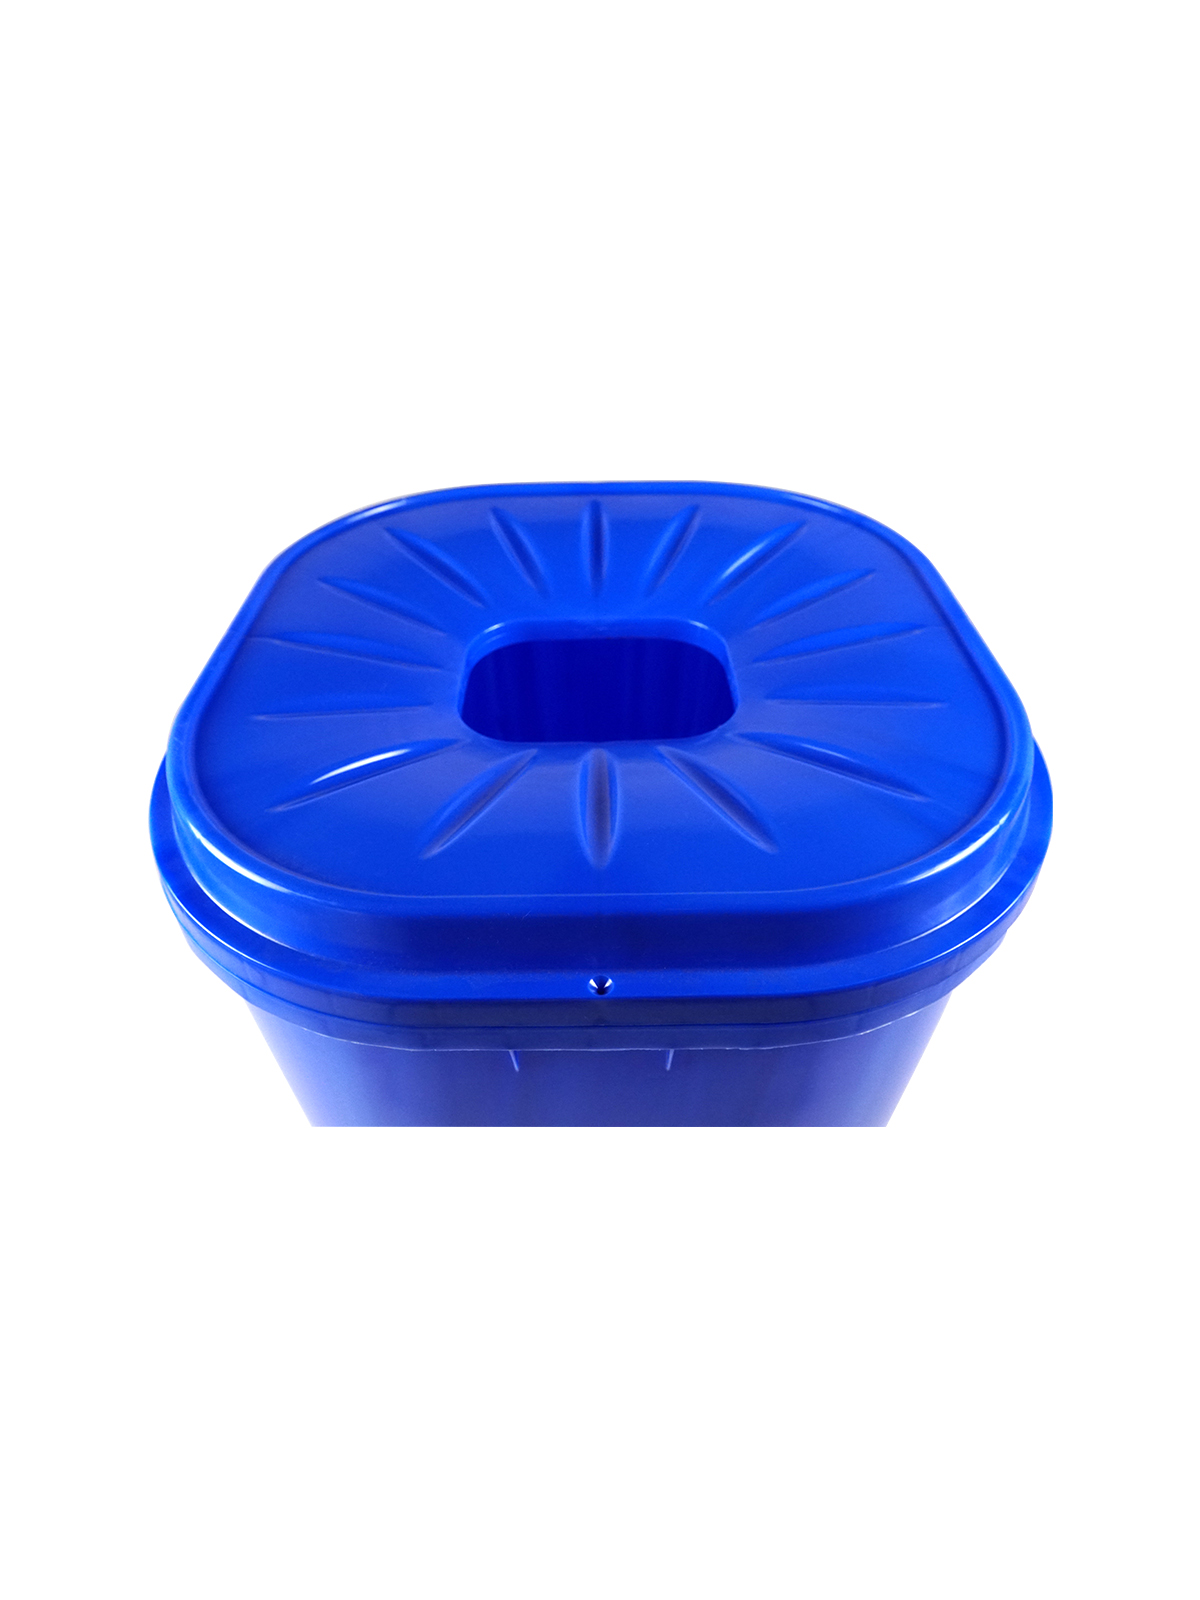 55 GALLON - Single - Unit - Recycling Bin - Full - Blue